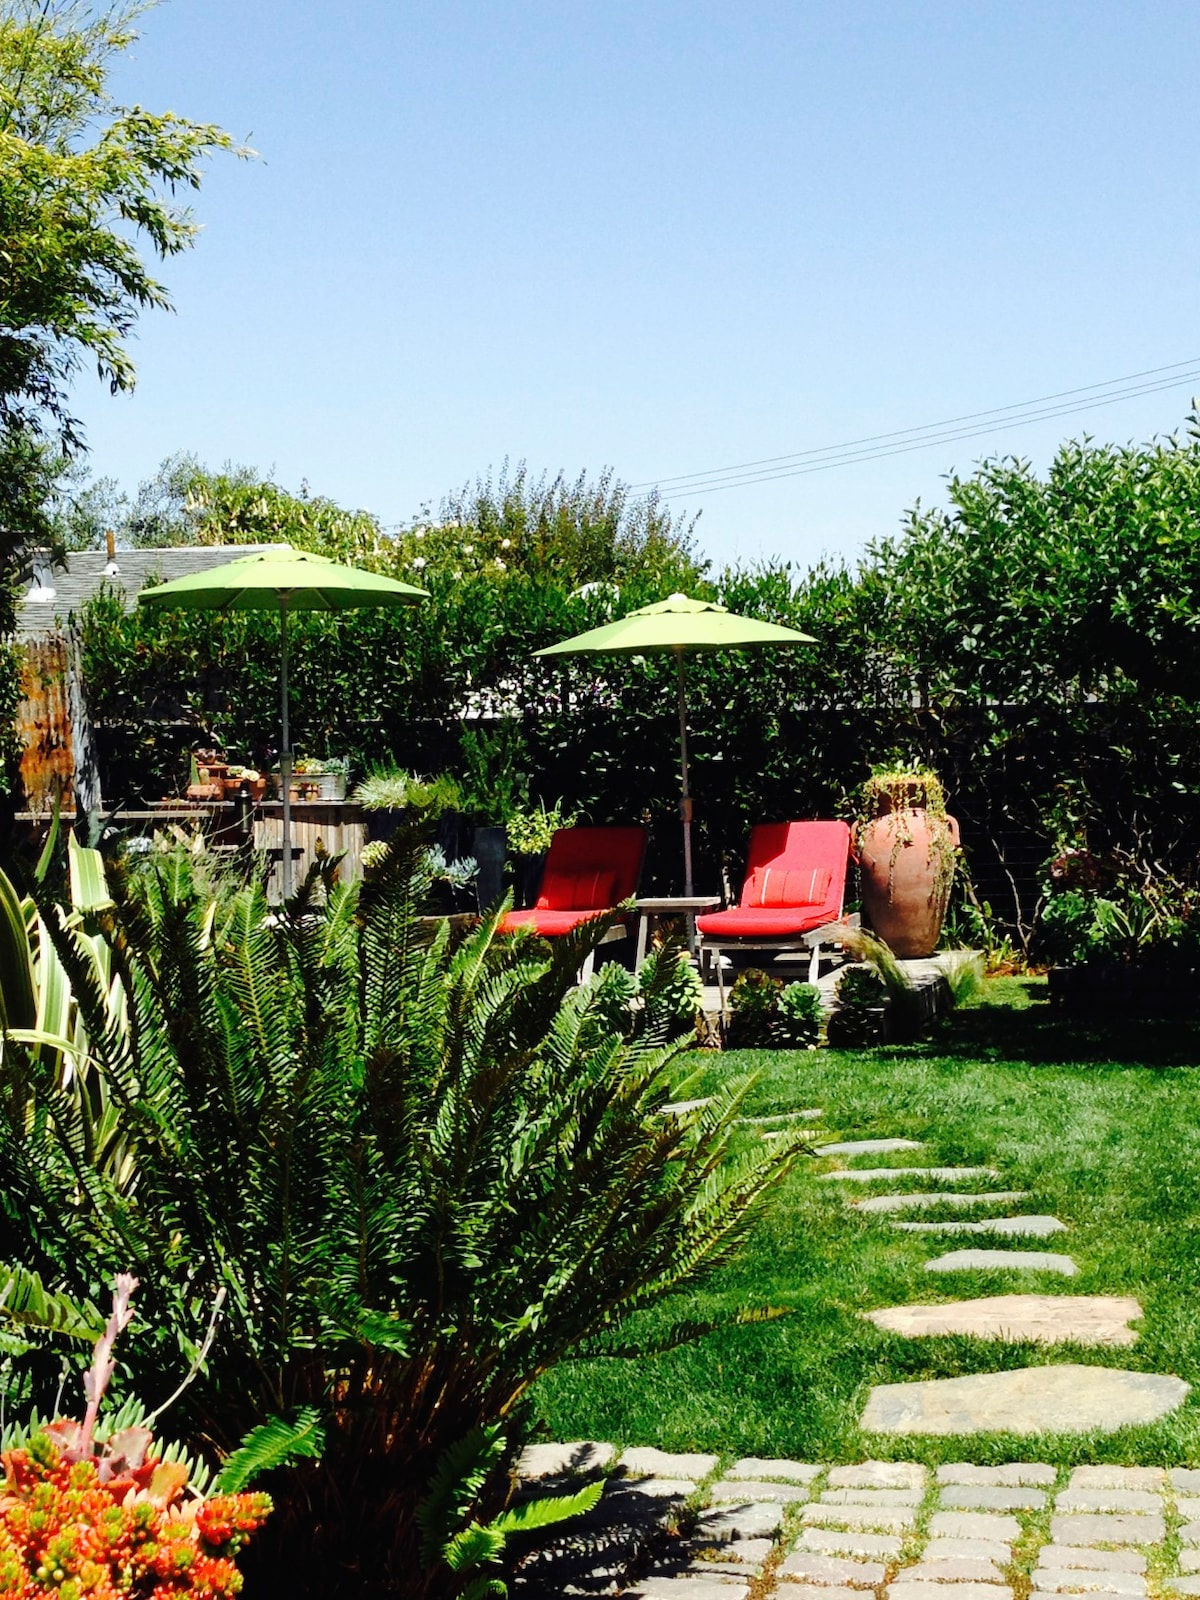 Relax on the red chaise lounges in the shared garden